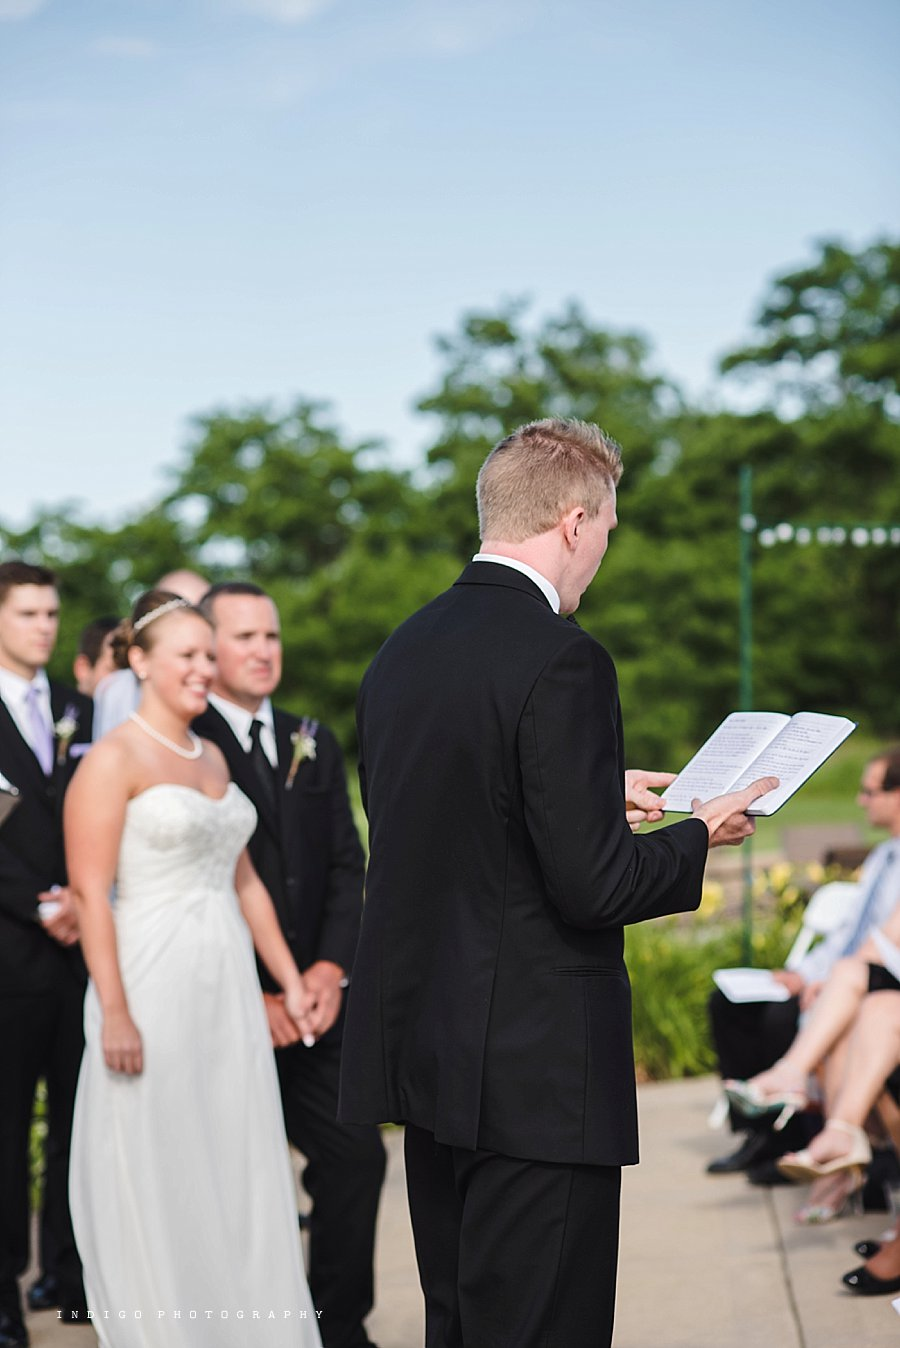 timber-pointe-golf-course-wedding-rockford-il-wedding-photographers_1747.jpg